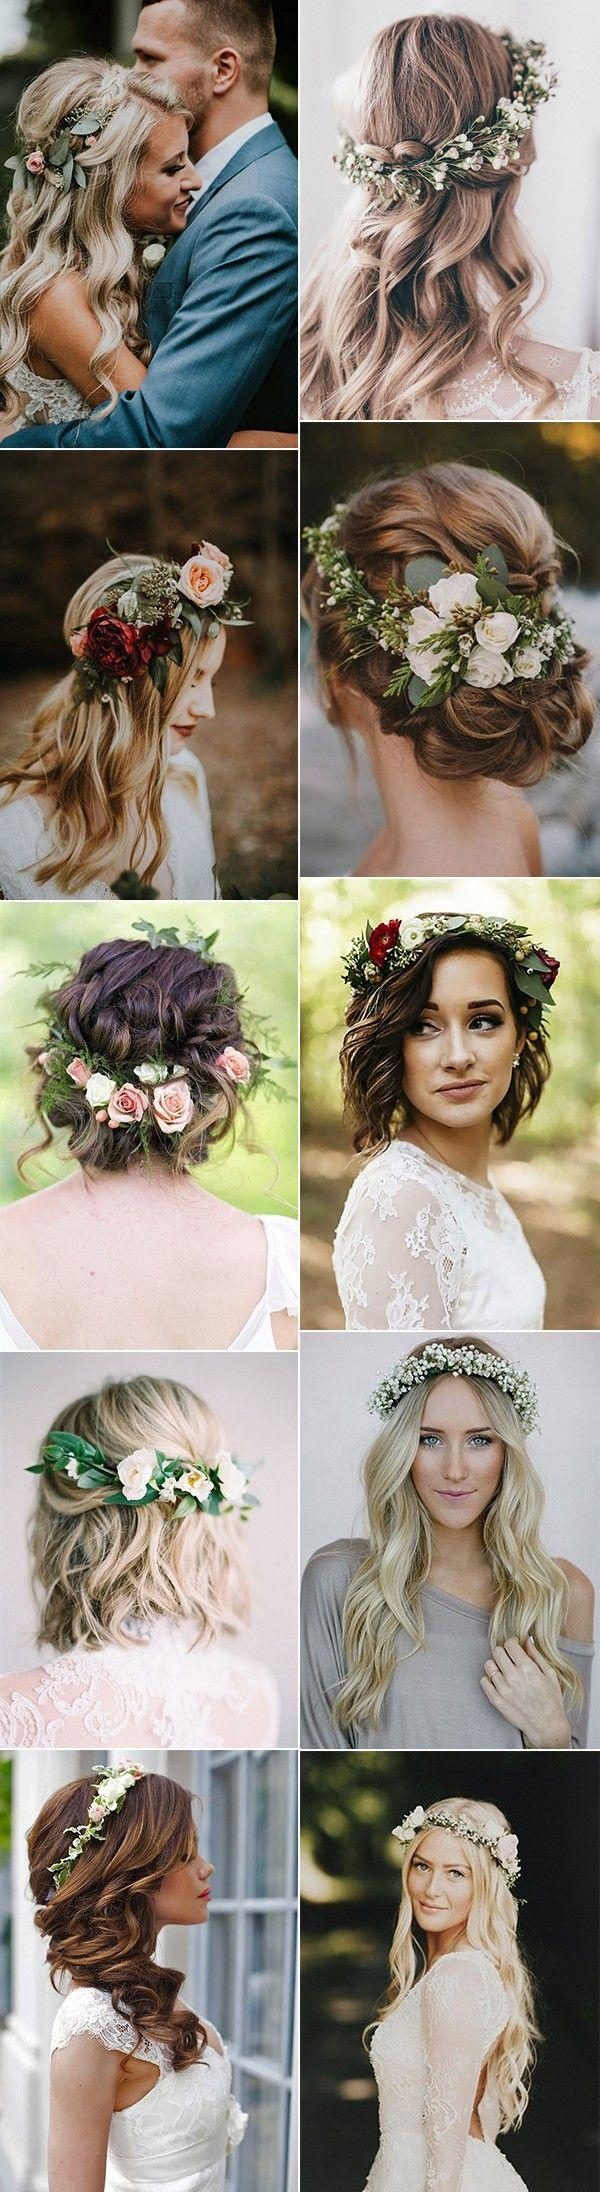 Mariage - 18 Gorgeous Wedding Hairstyles With Flower Crown